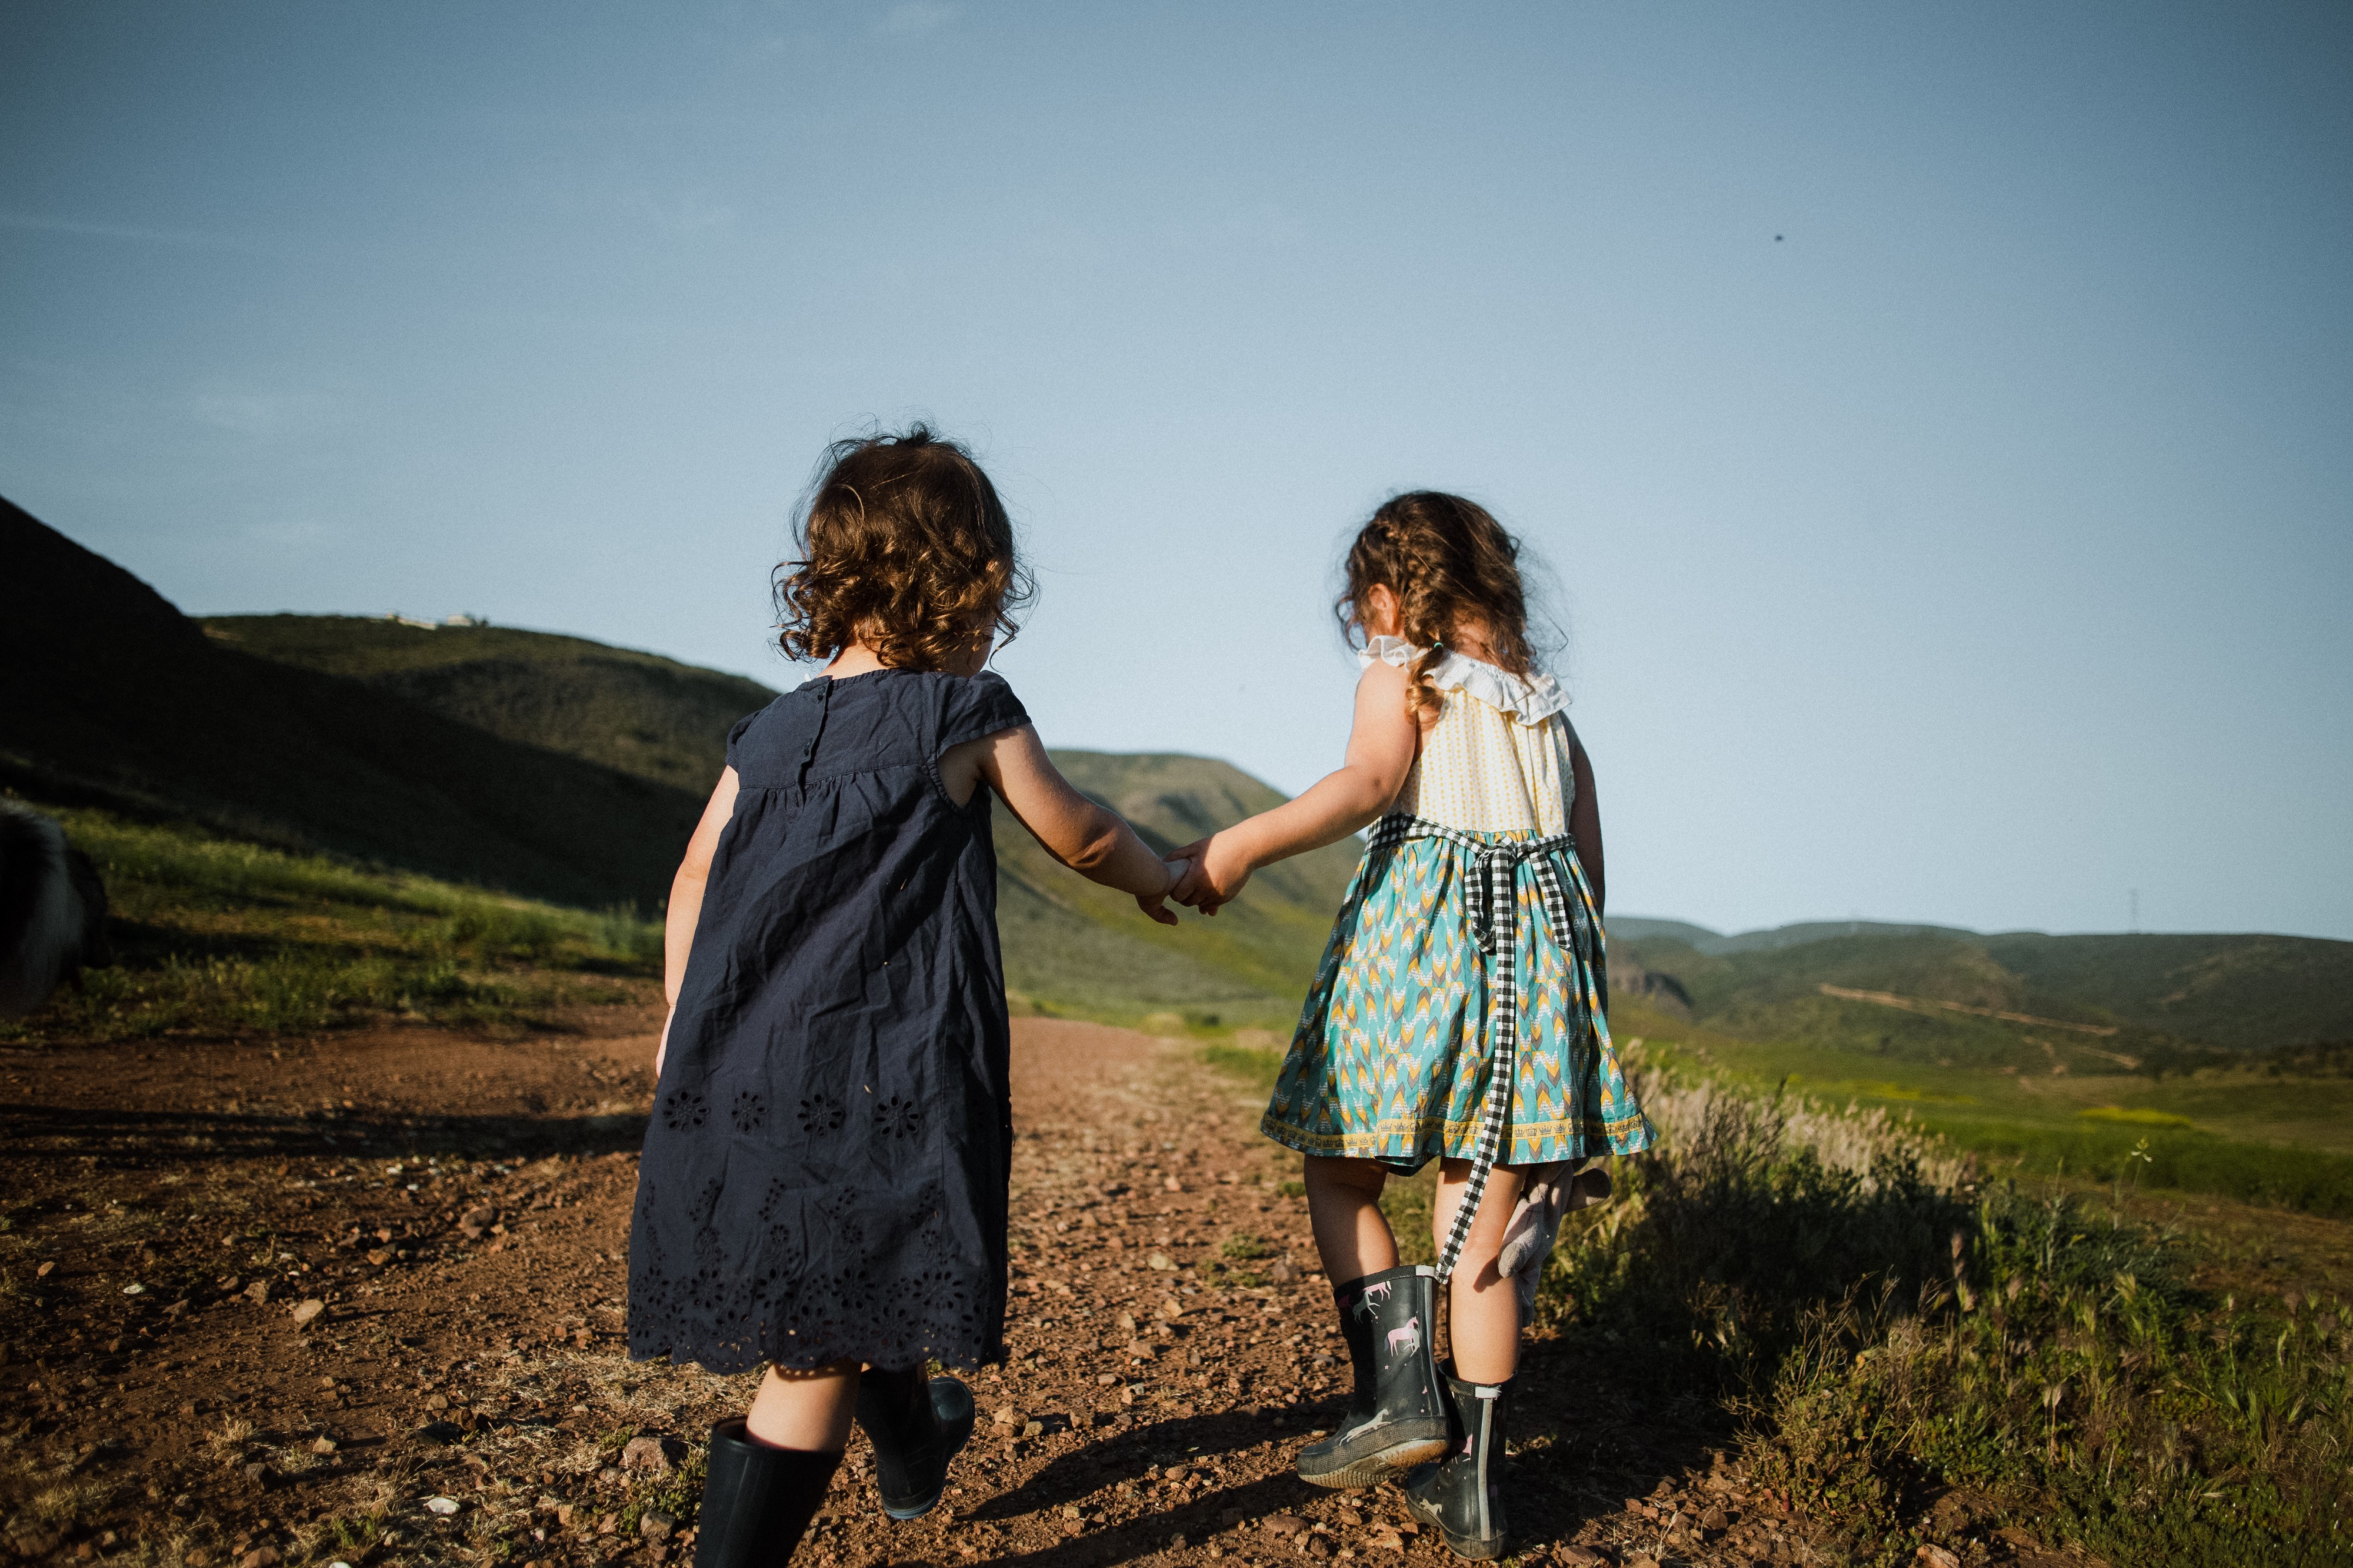 Two little girls (age around 3) holding hands while walking from the camera surrounded by open plains and nature.